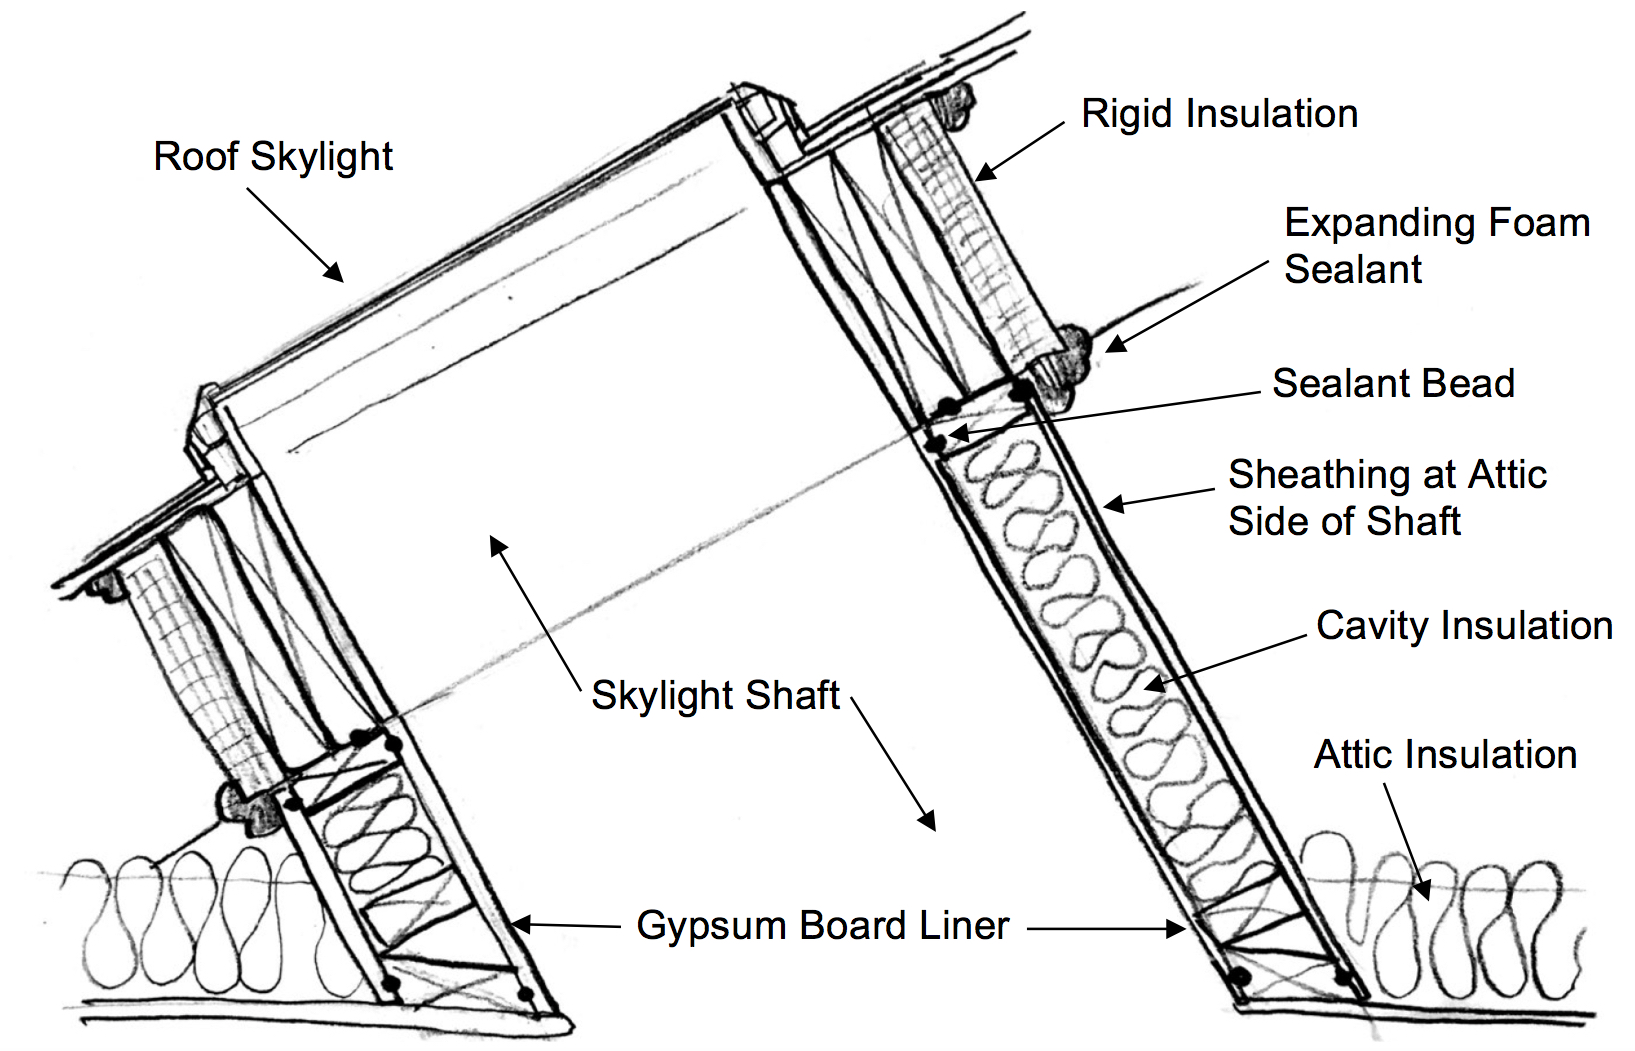 winter in space diagram guitar wiring diagrams humbucker how to inspect the skylight shaft wall insulation internachi